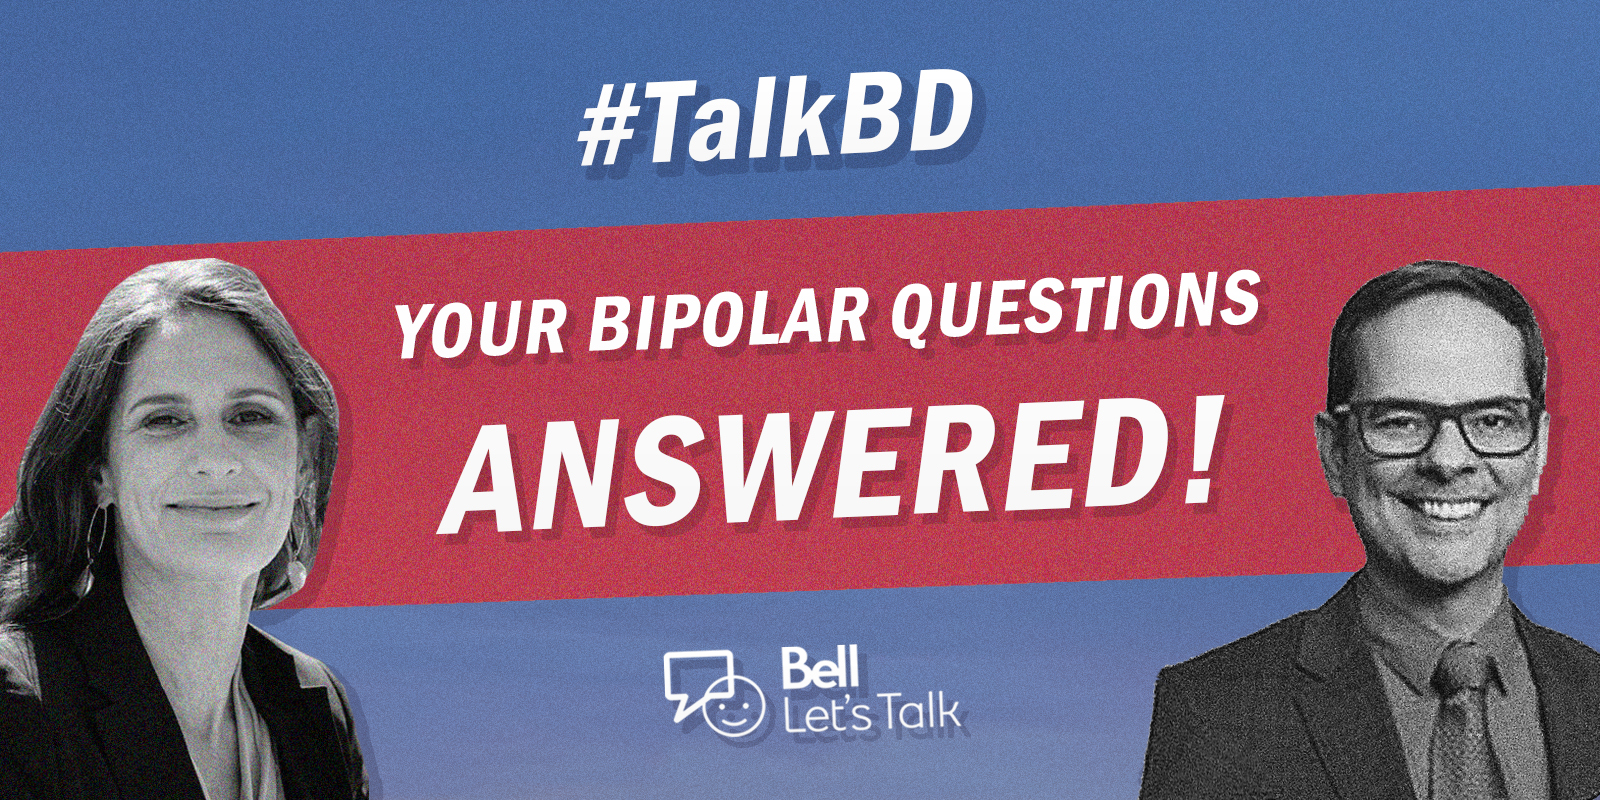 #TalkBD: Your bipolar questions answered for Bell Let's Talk day!